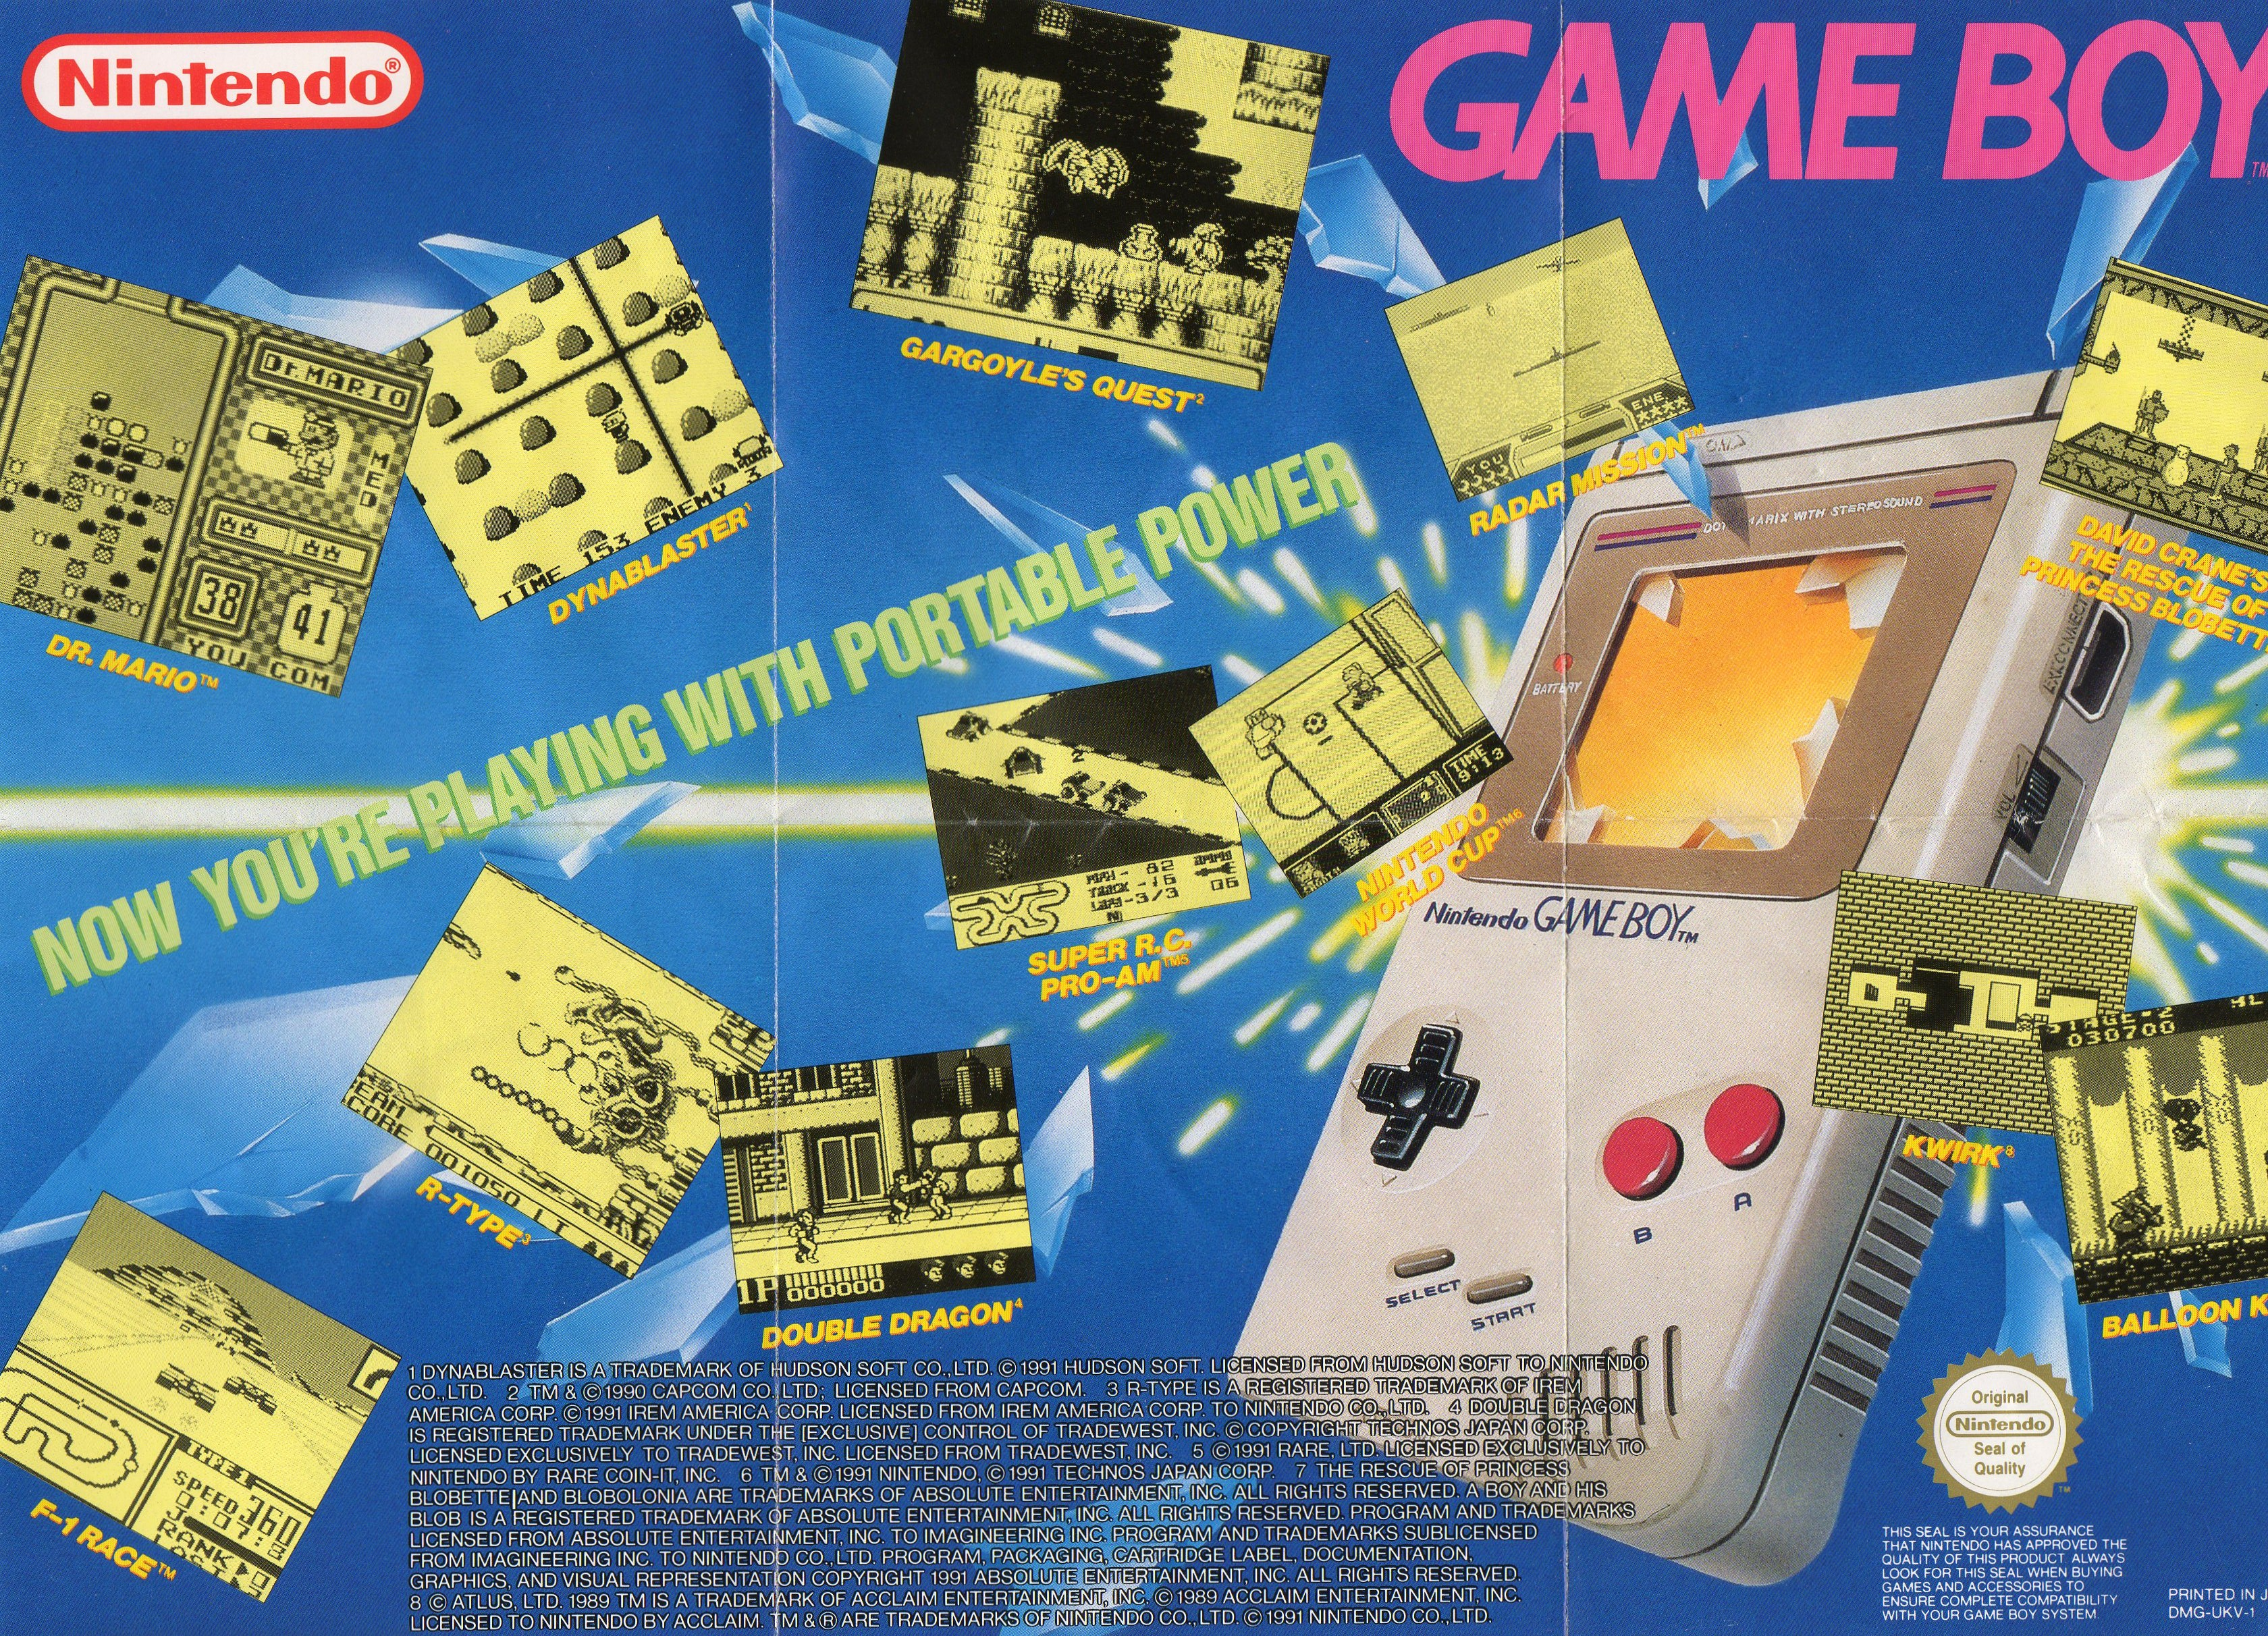 the game boy and game boy 3360x2424